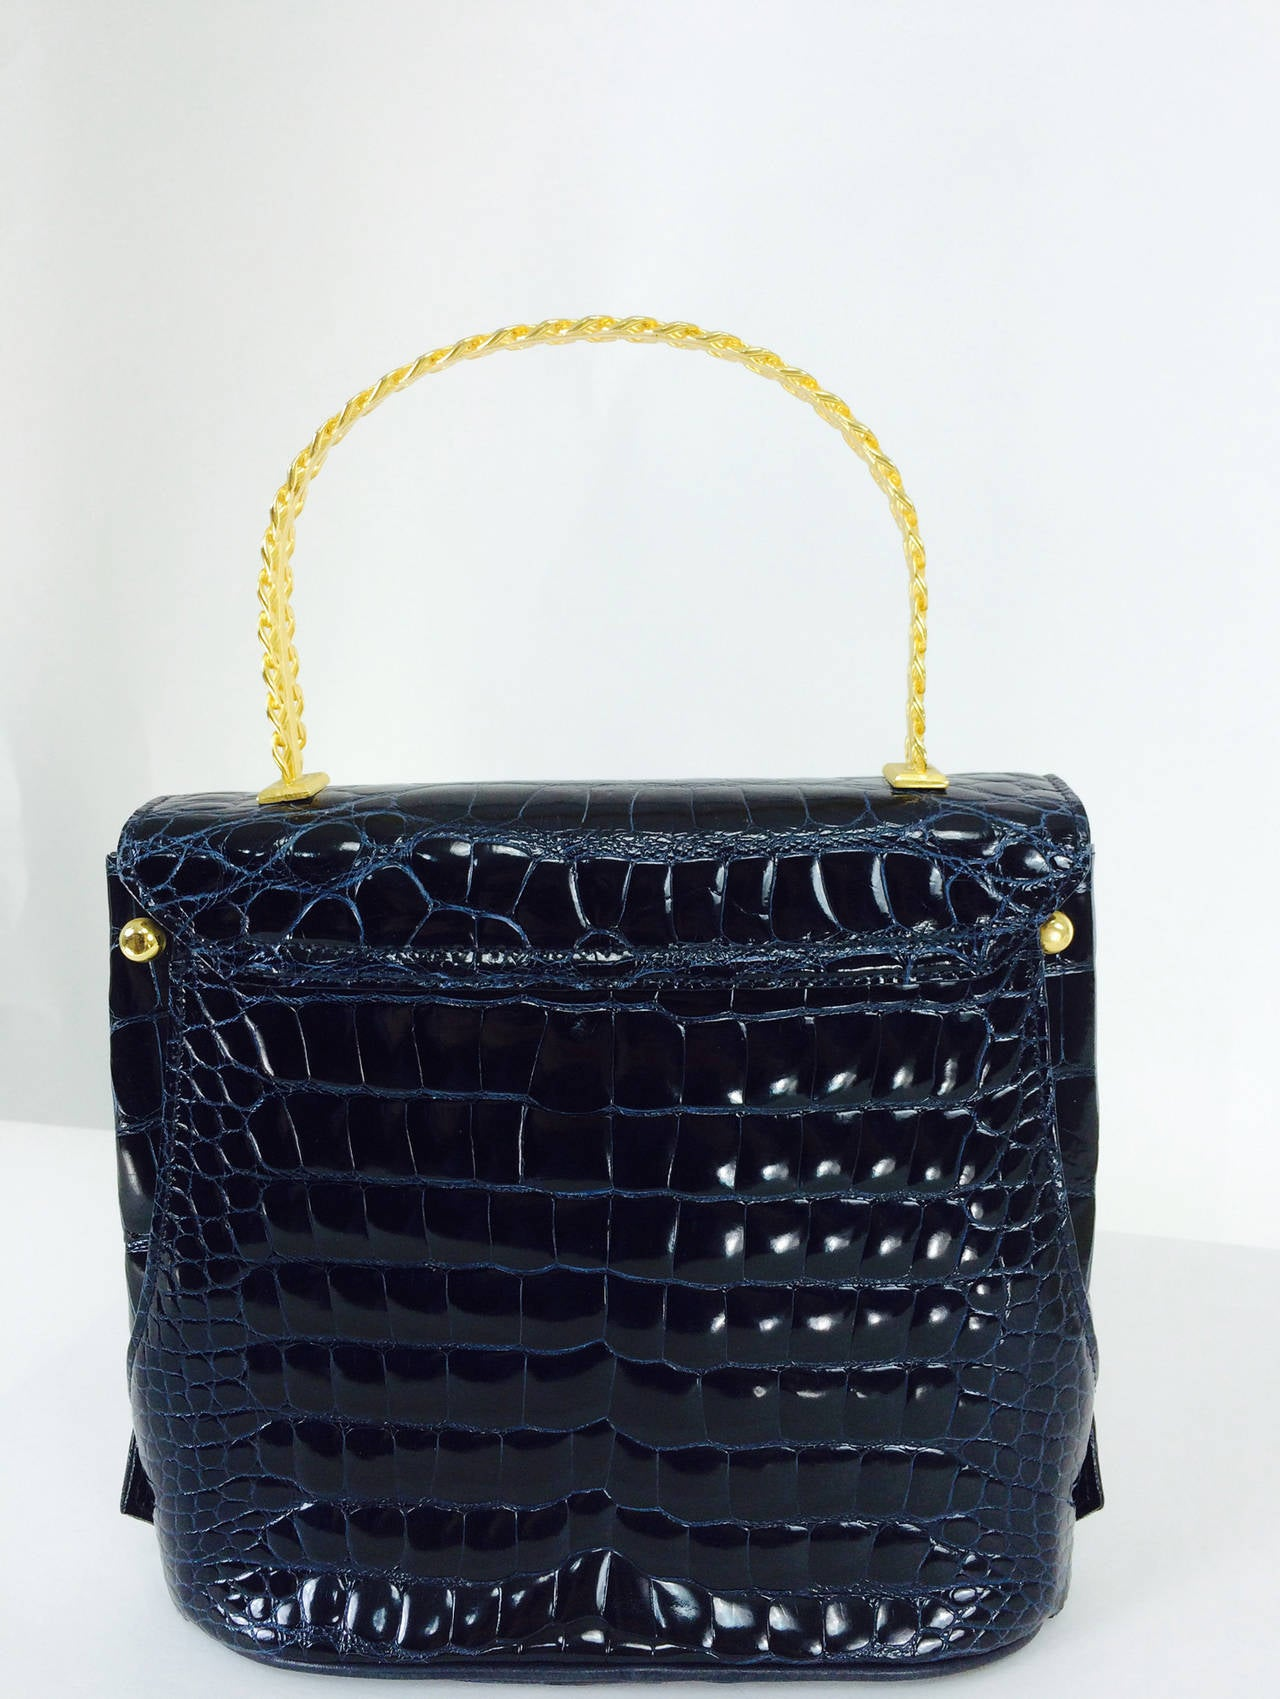 Women's Lana Marks Lana of London navy blue glazed alligator handbag 1980s For Sale